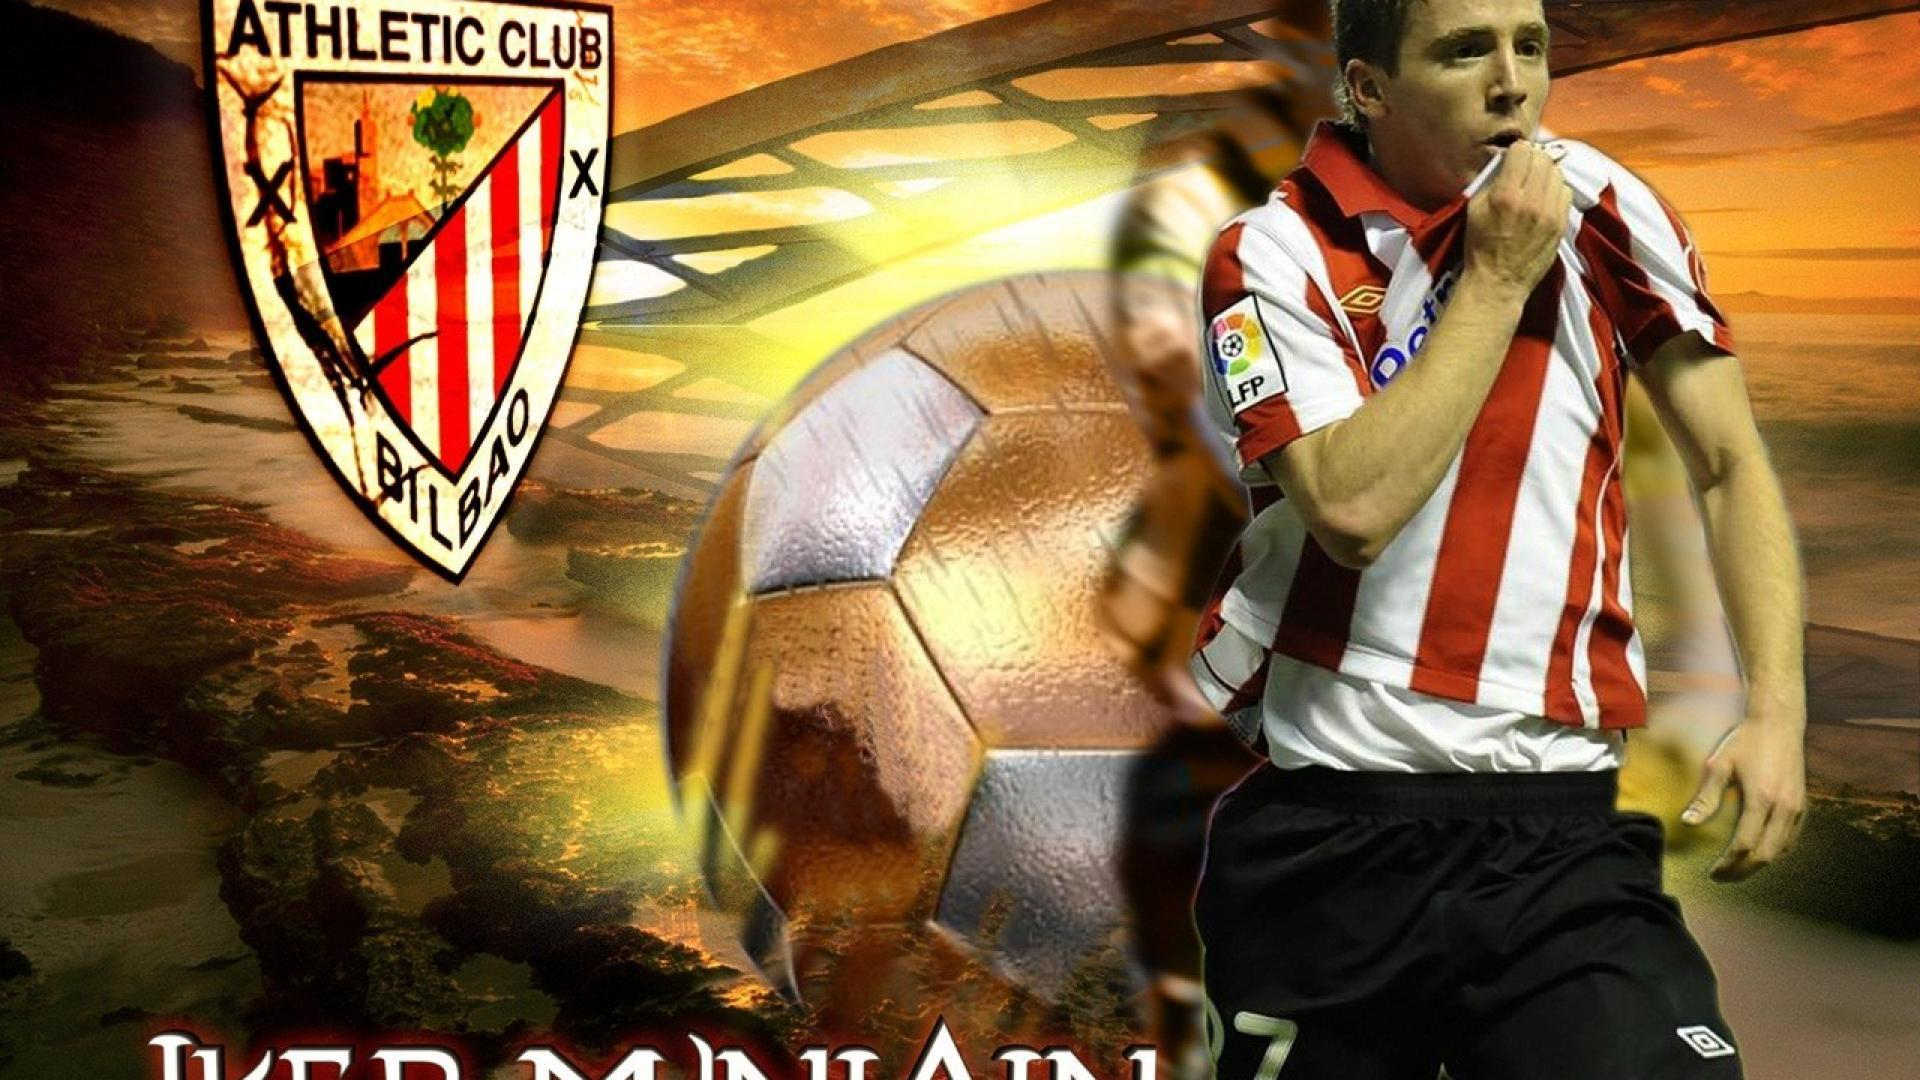 Soccer athletic bilbao club wallpapers